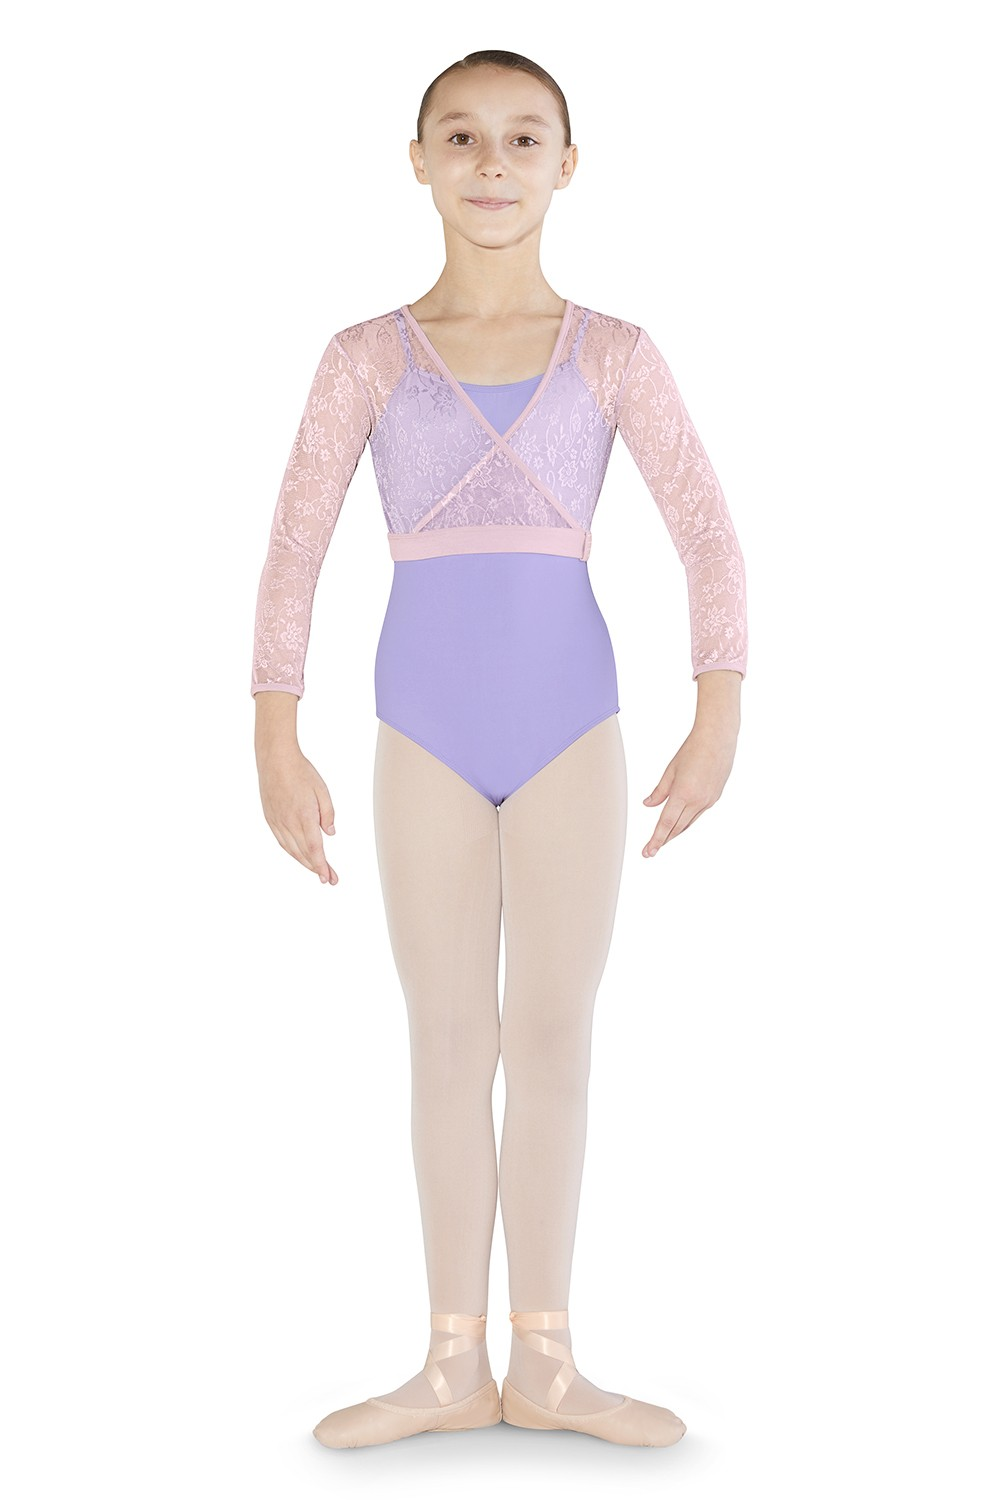 bb951d4a2 On selected styles and colors. Mesh Wrap Top Children's Dance Tops